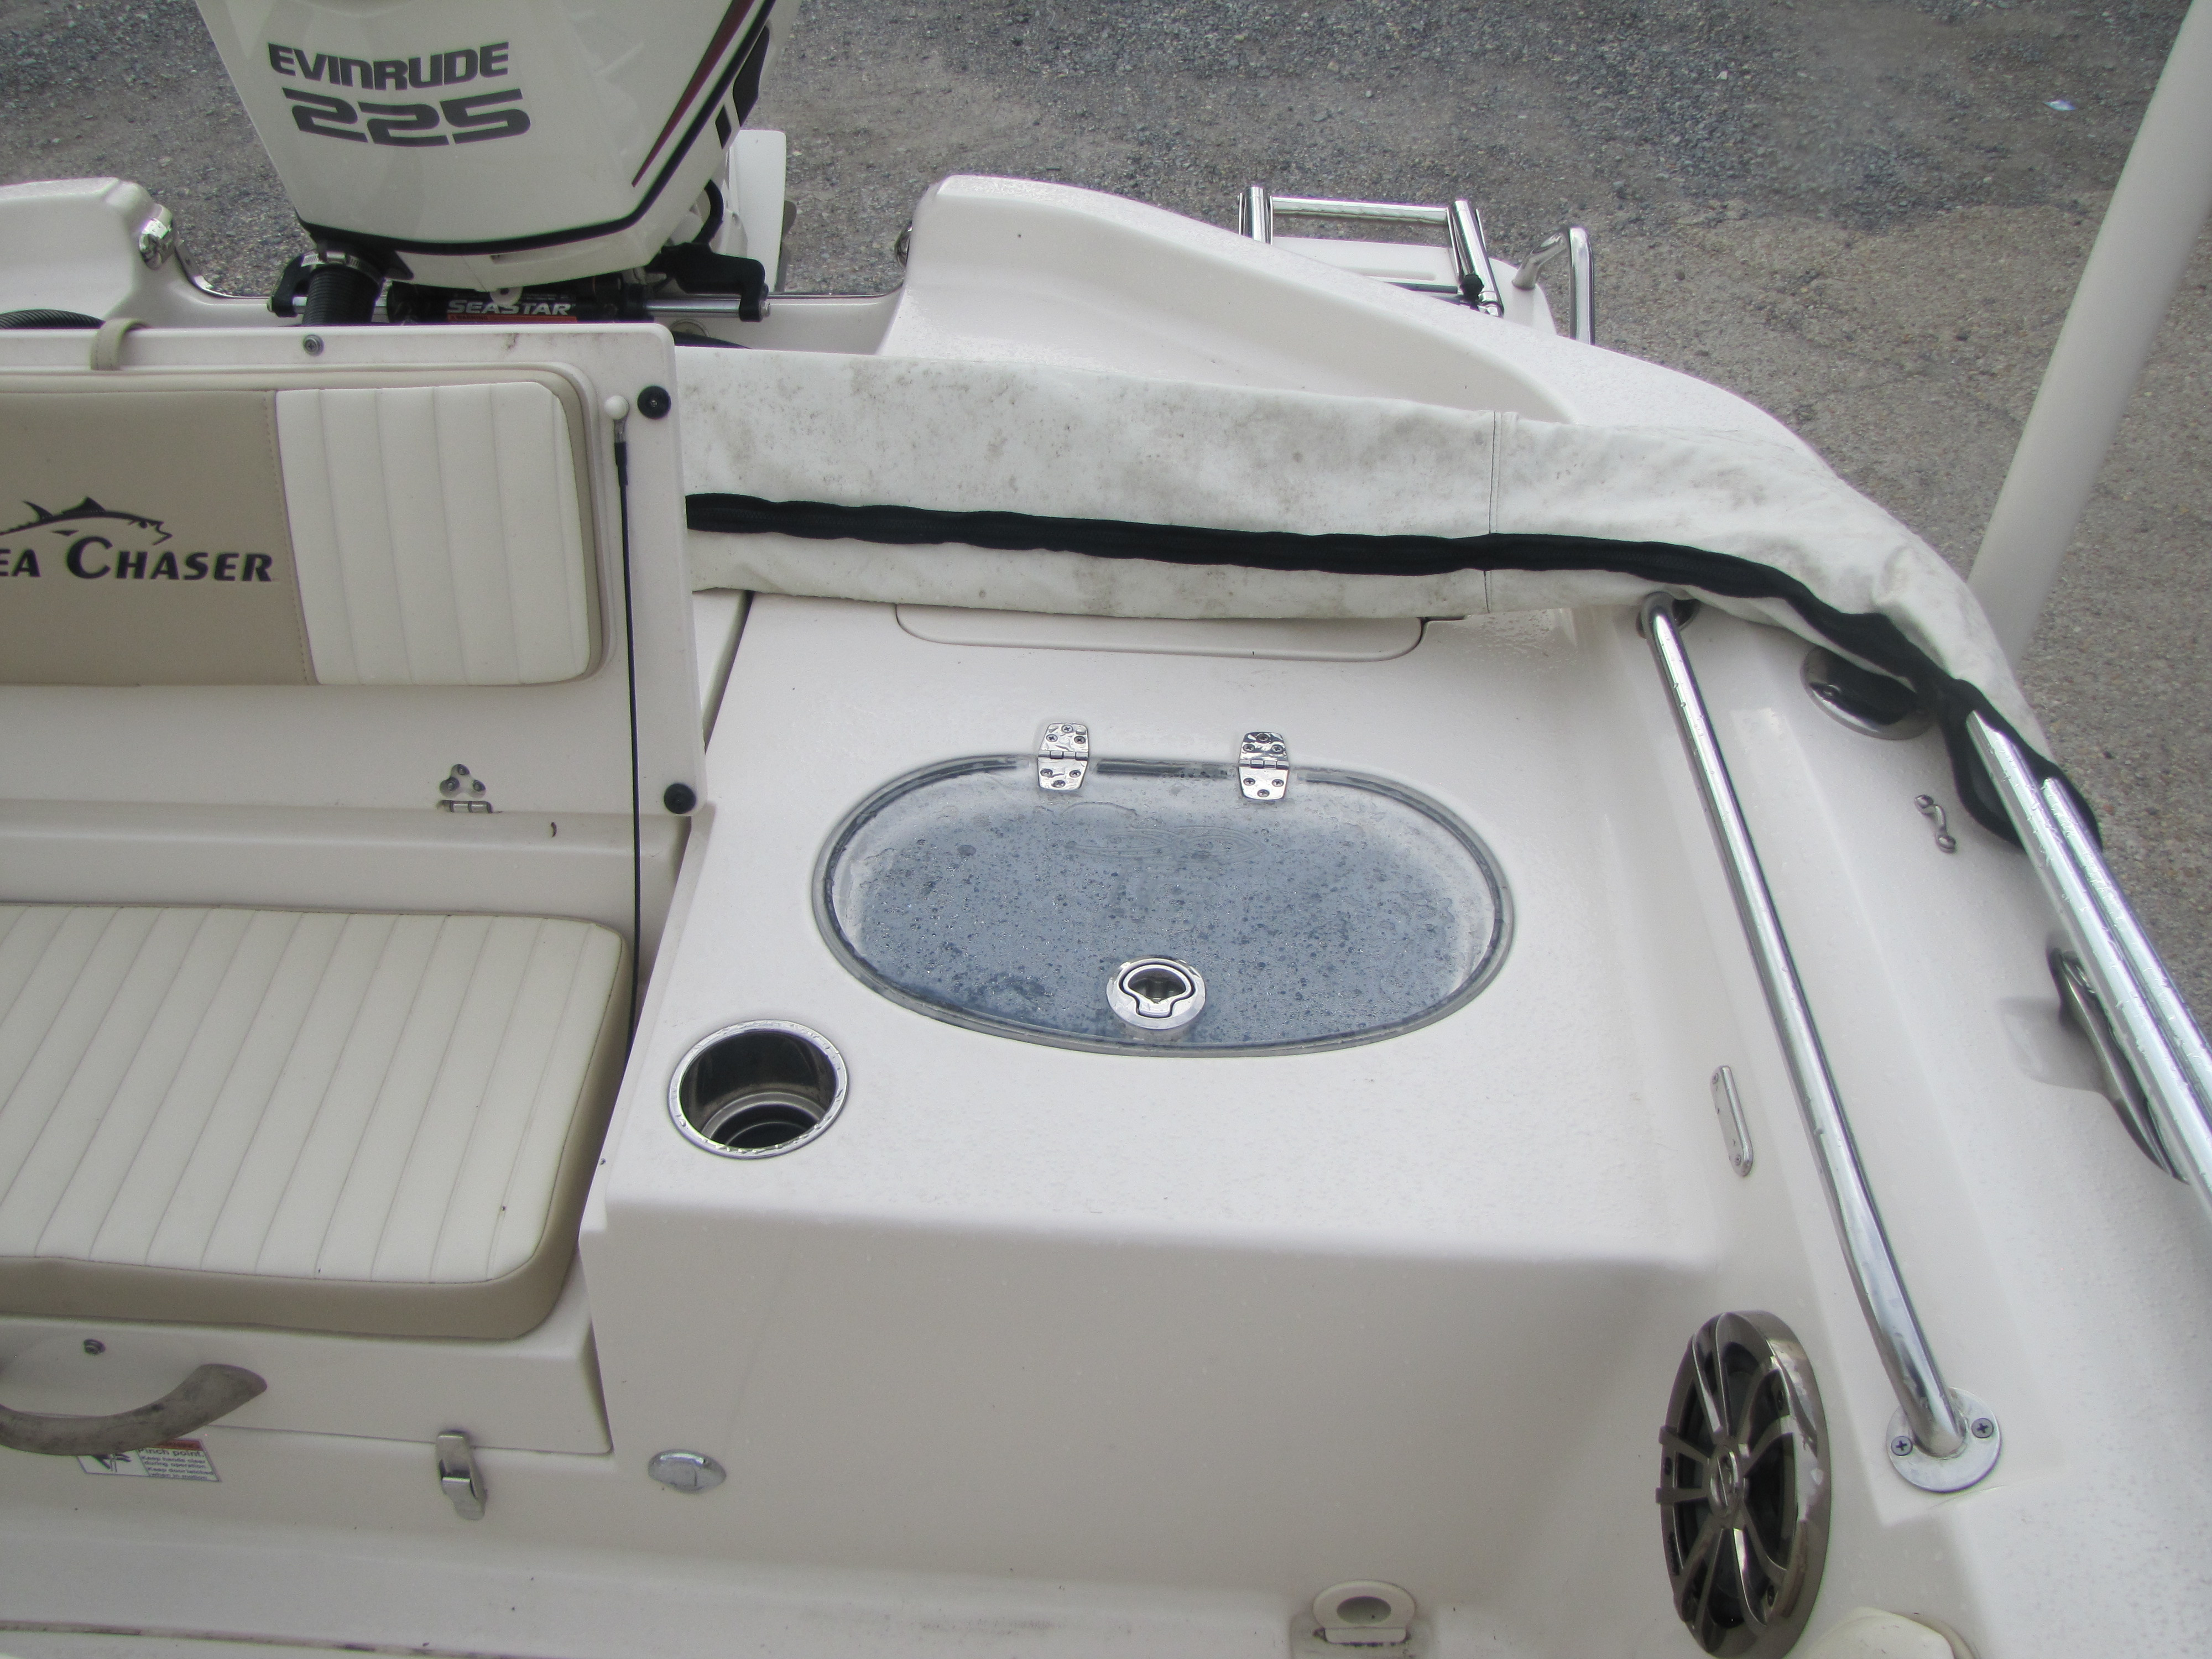 2018 Sea Chaser boat for sale, model of the boat is 23 LX & Image # 4 of 19